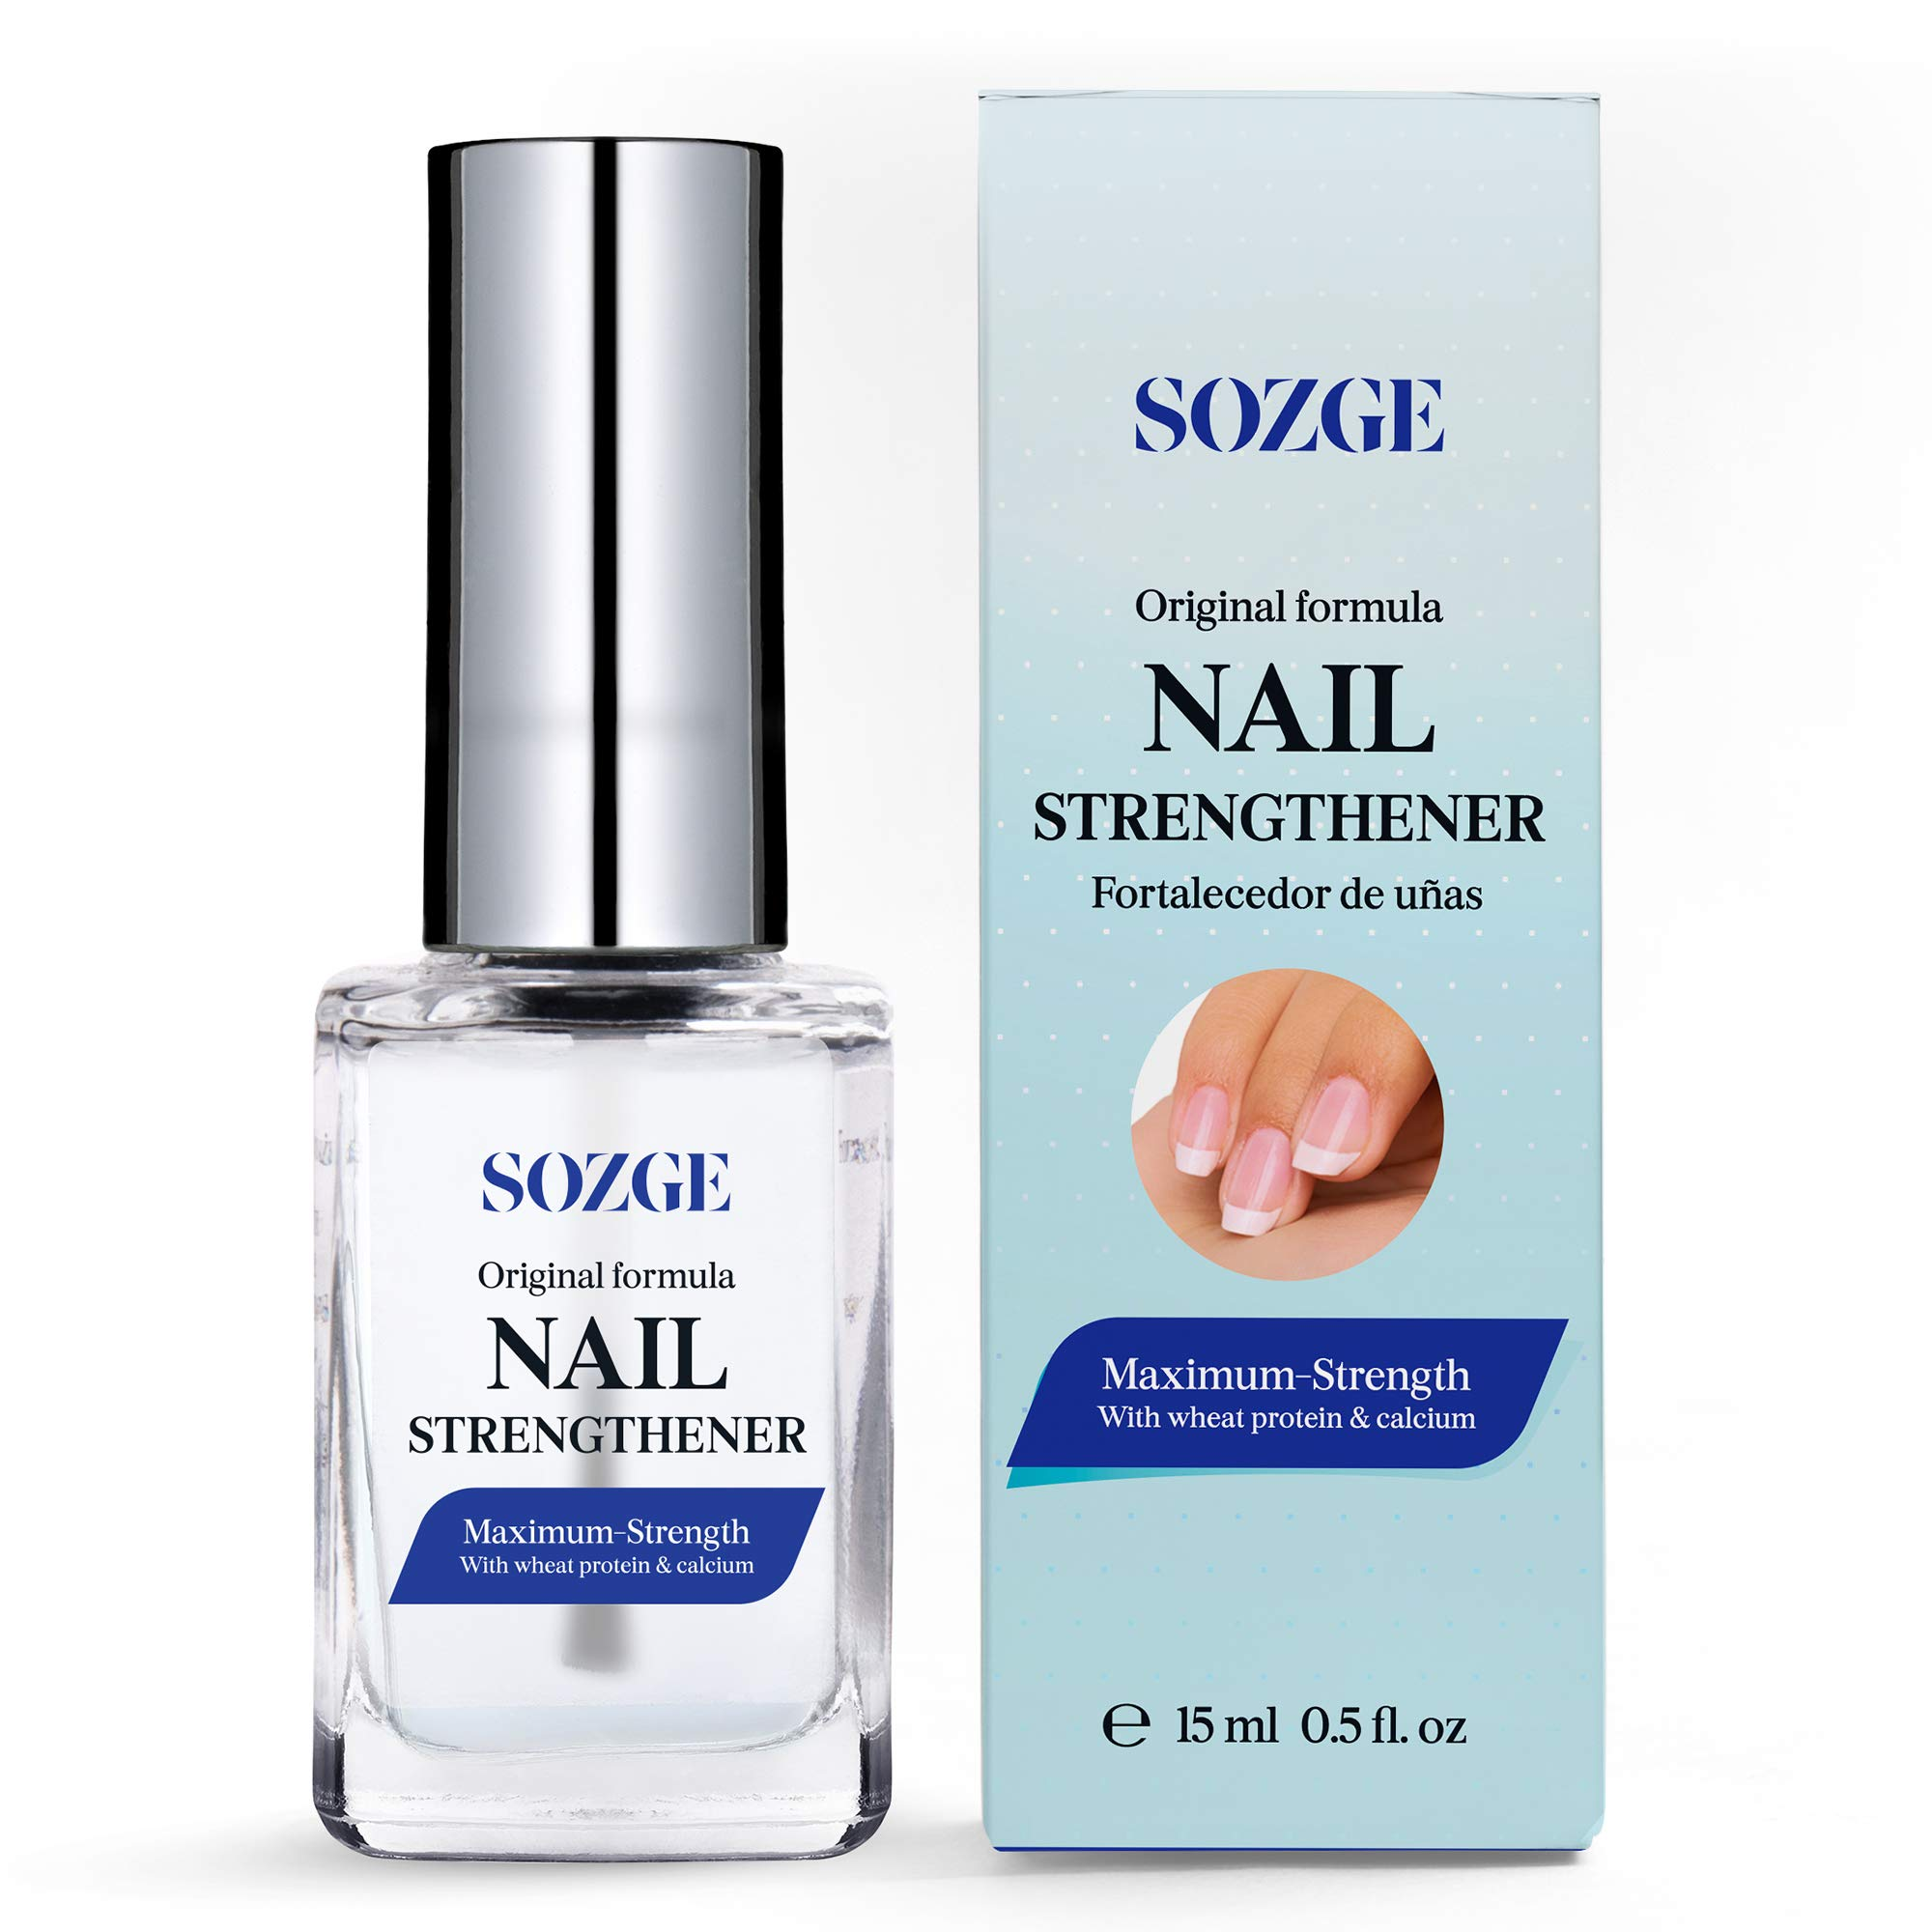 SOZGE Nail Strengthener for Treating Weak, Damaged Nails, Promotes Growth, Use as a Top Coat or Base Coat by SOZGE